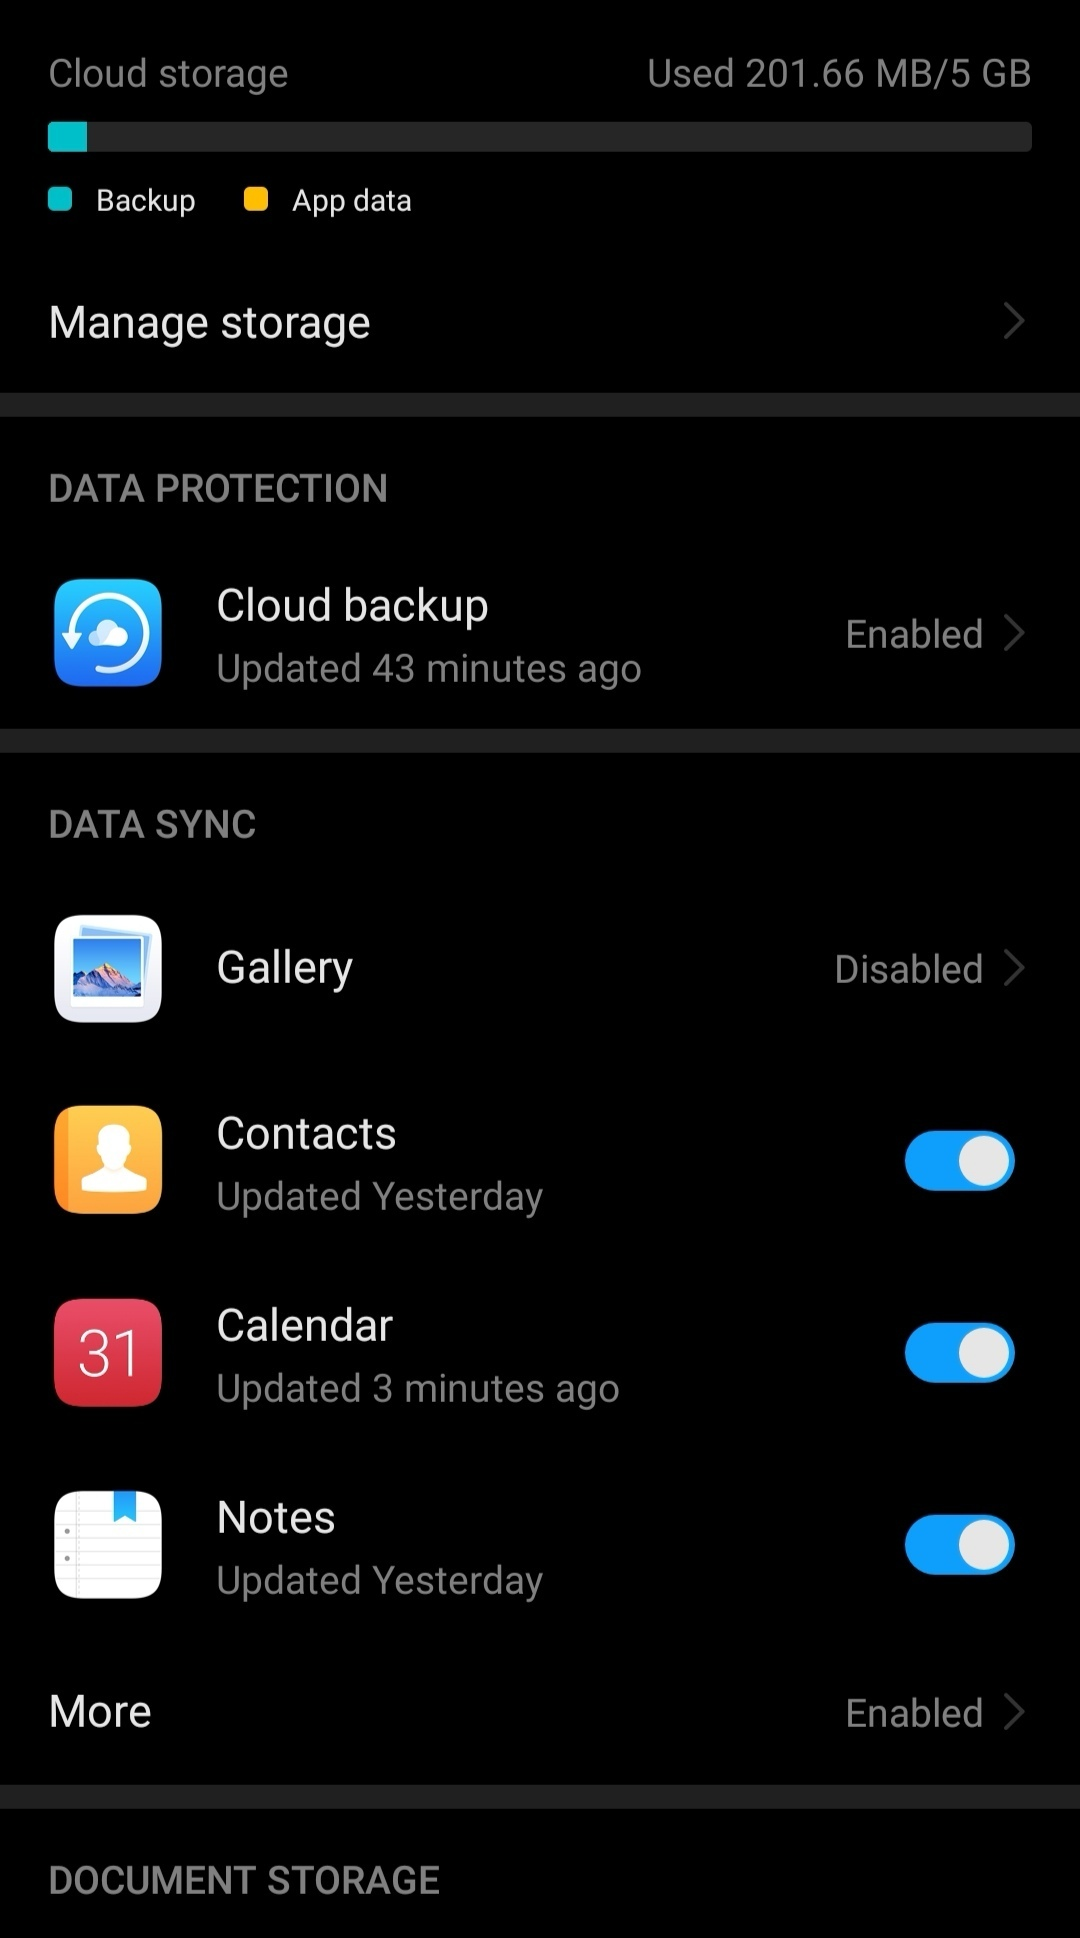 Backup to cloud - not enough space? | Official Huawei Community UK